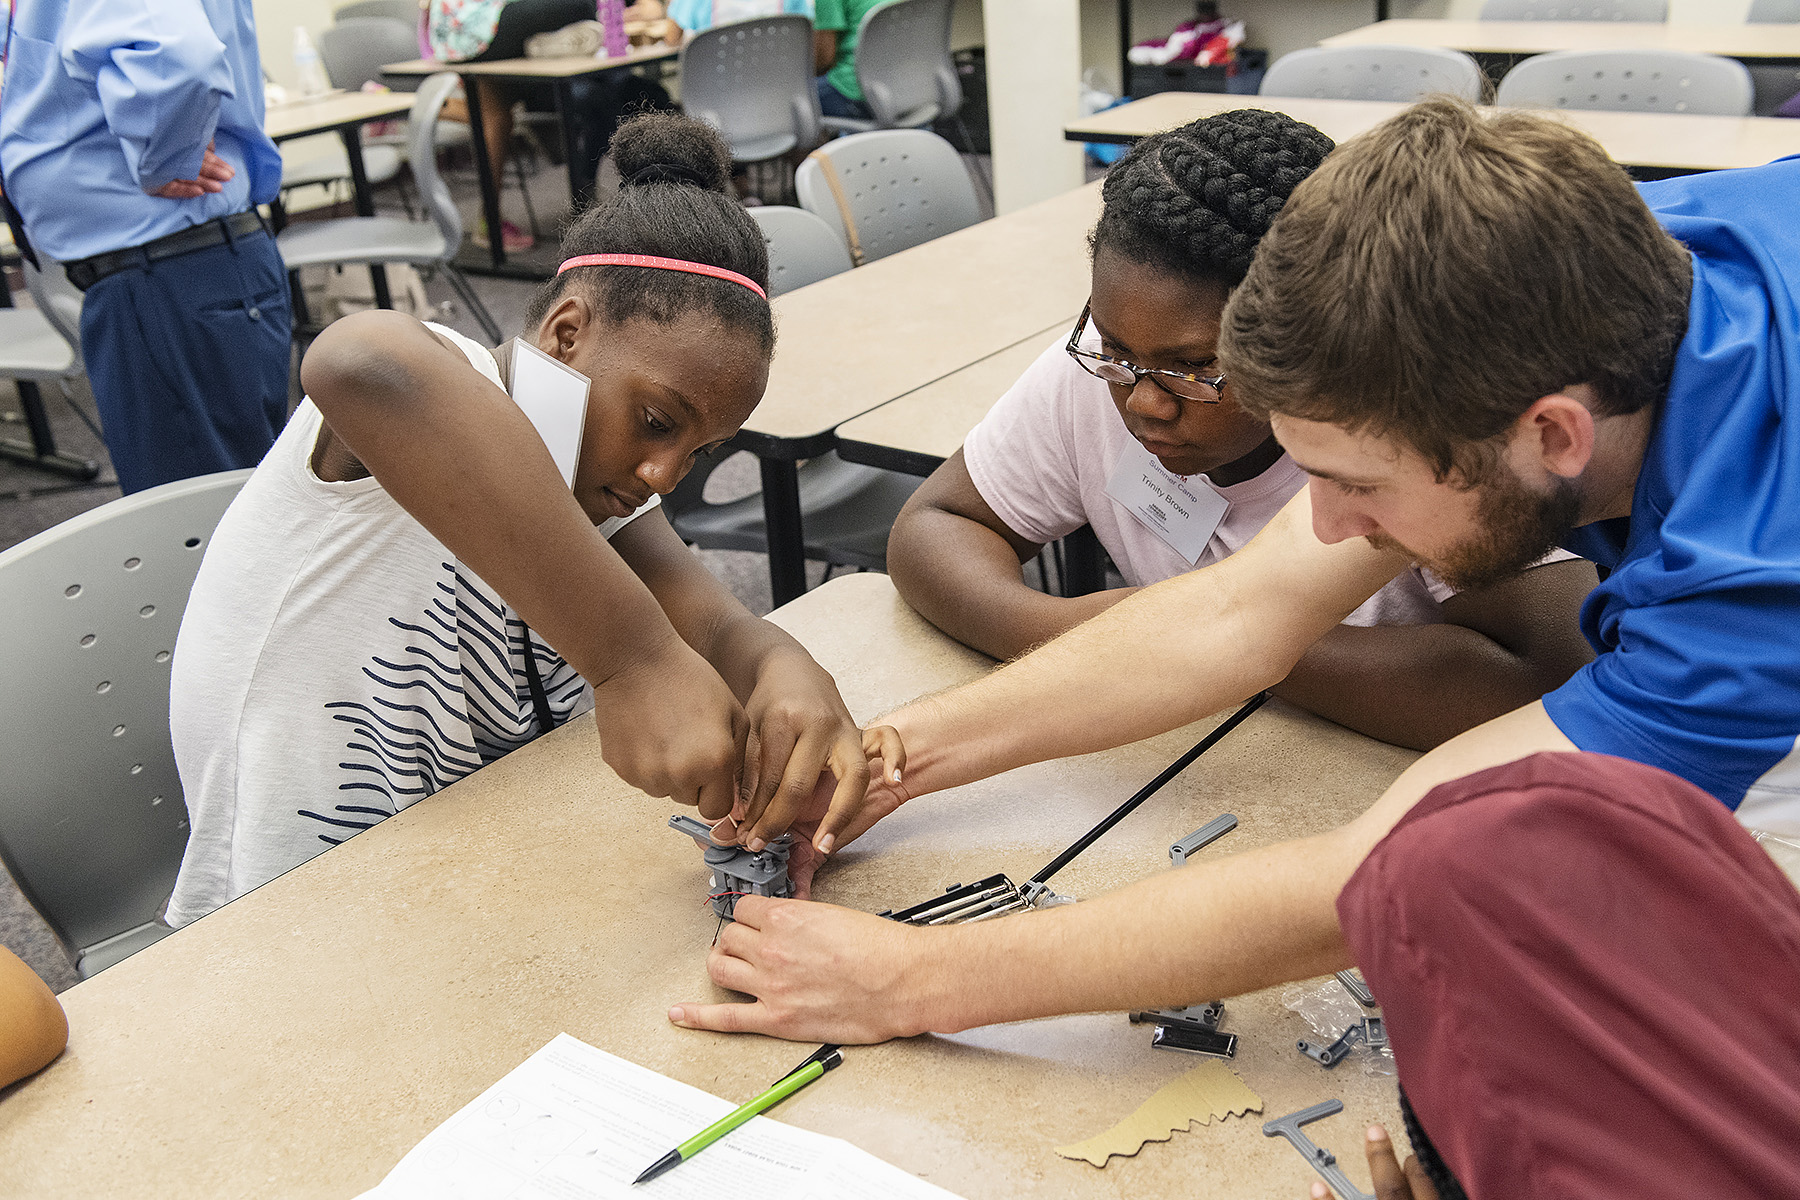 MTSU hosts STEM camp to urge young girls to explore science, tech careers